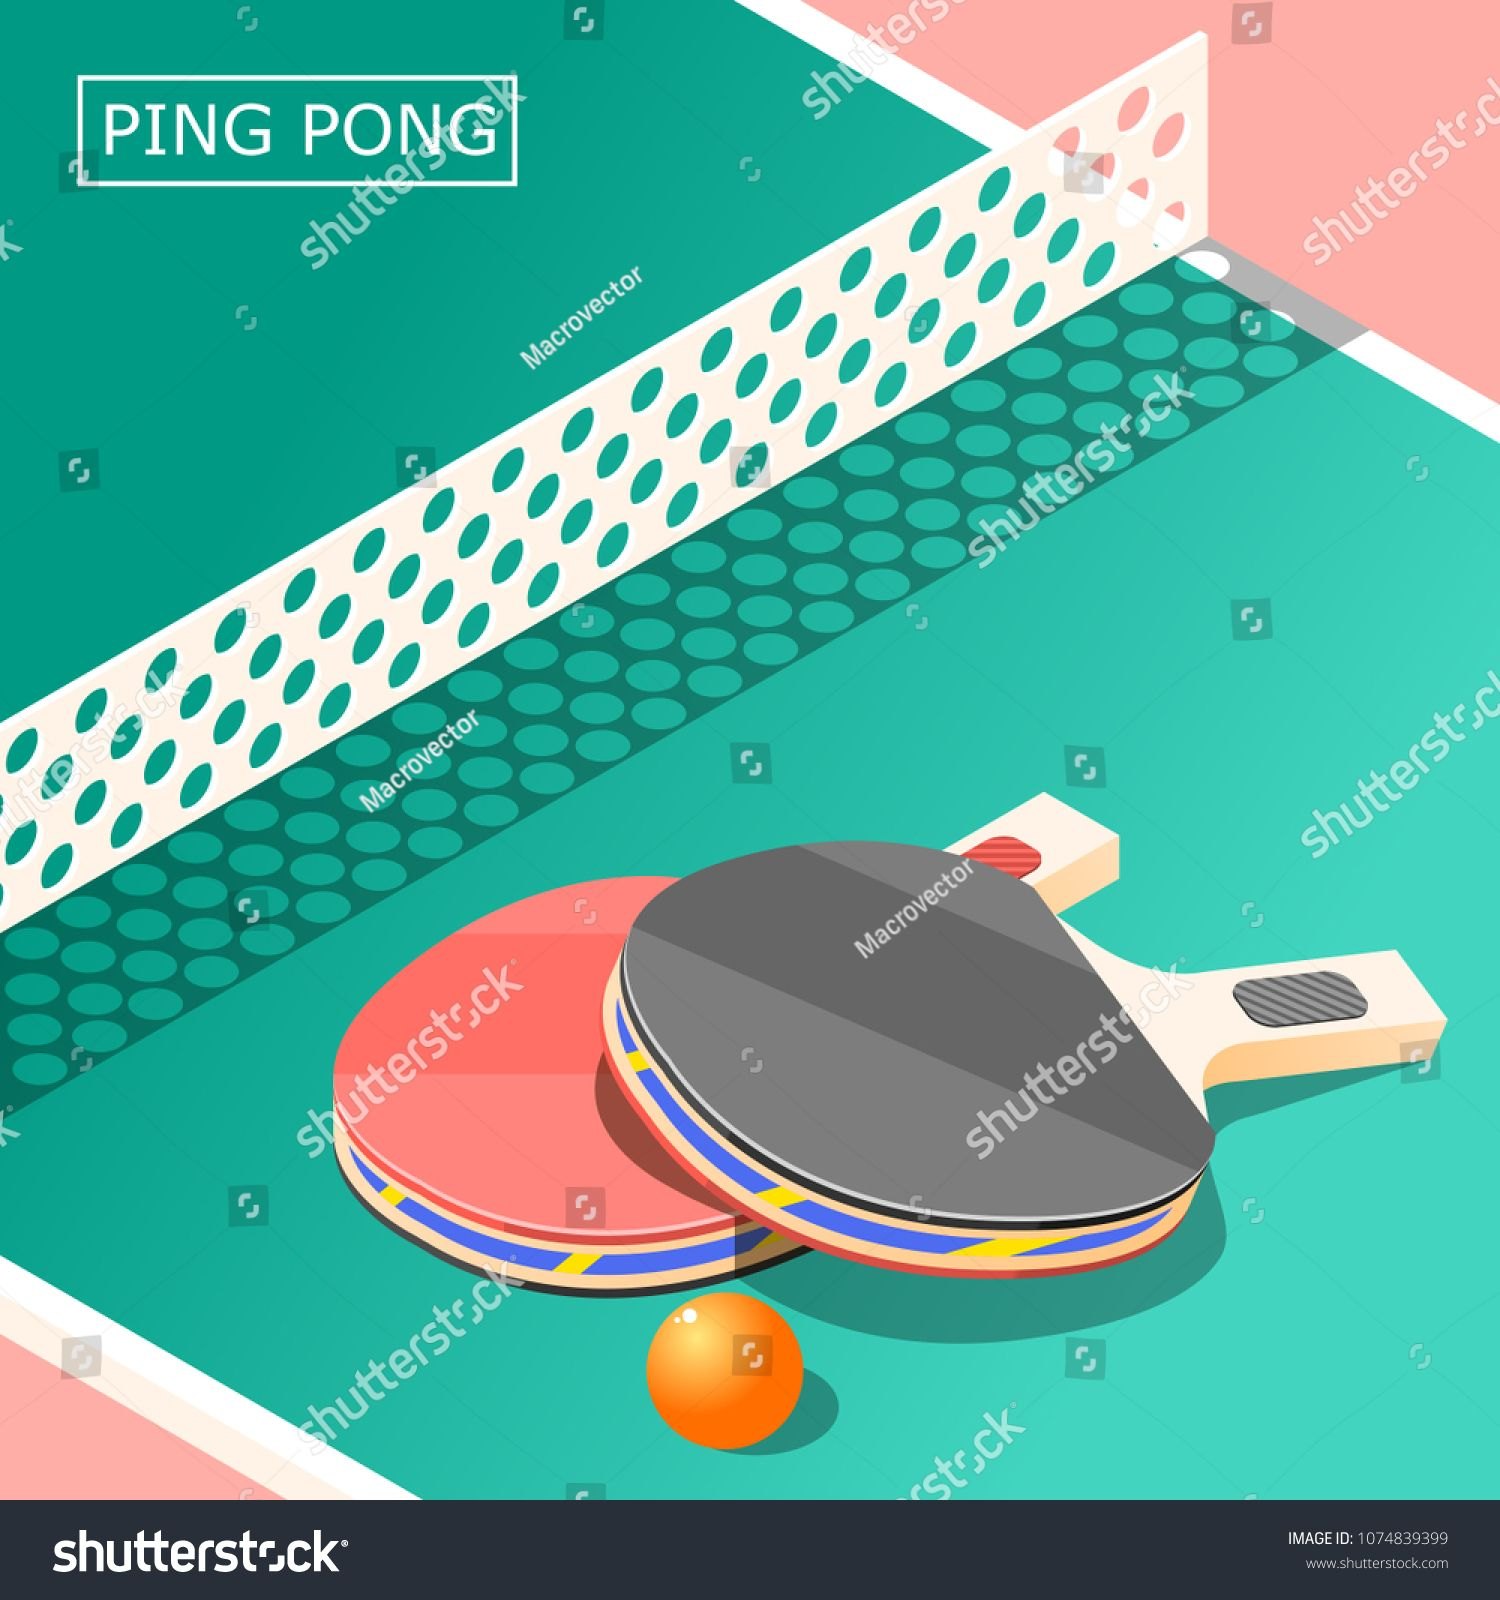 Ping Pong Isometric Background With Sports Equipment Including Table Rackets With Ball And Net Vector Illustration Ad Ad Background With Images Ping Pong Background